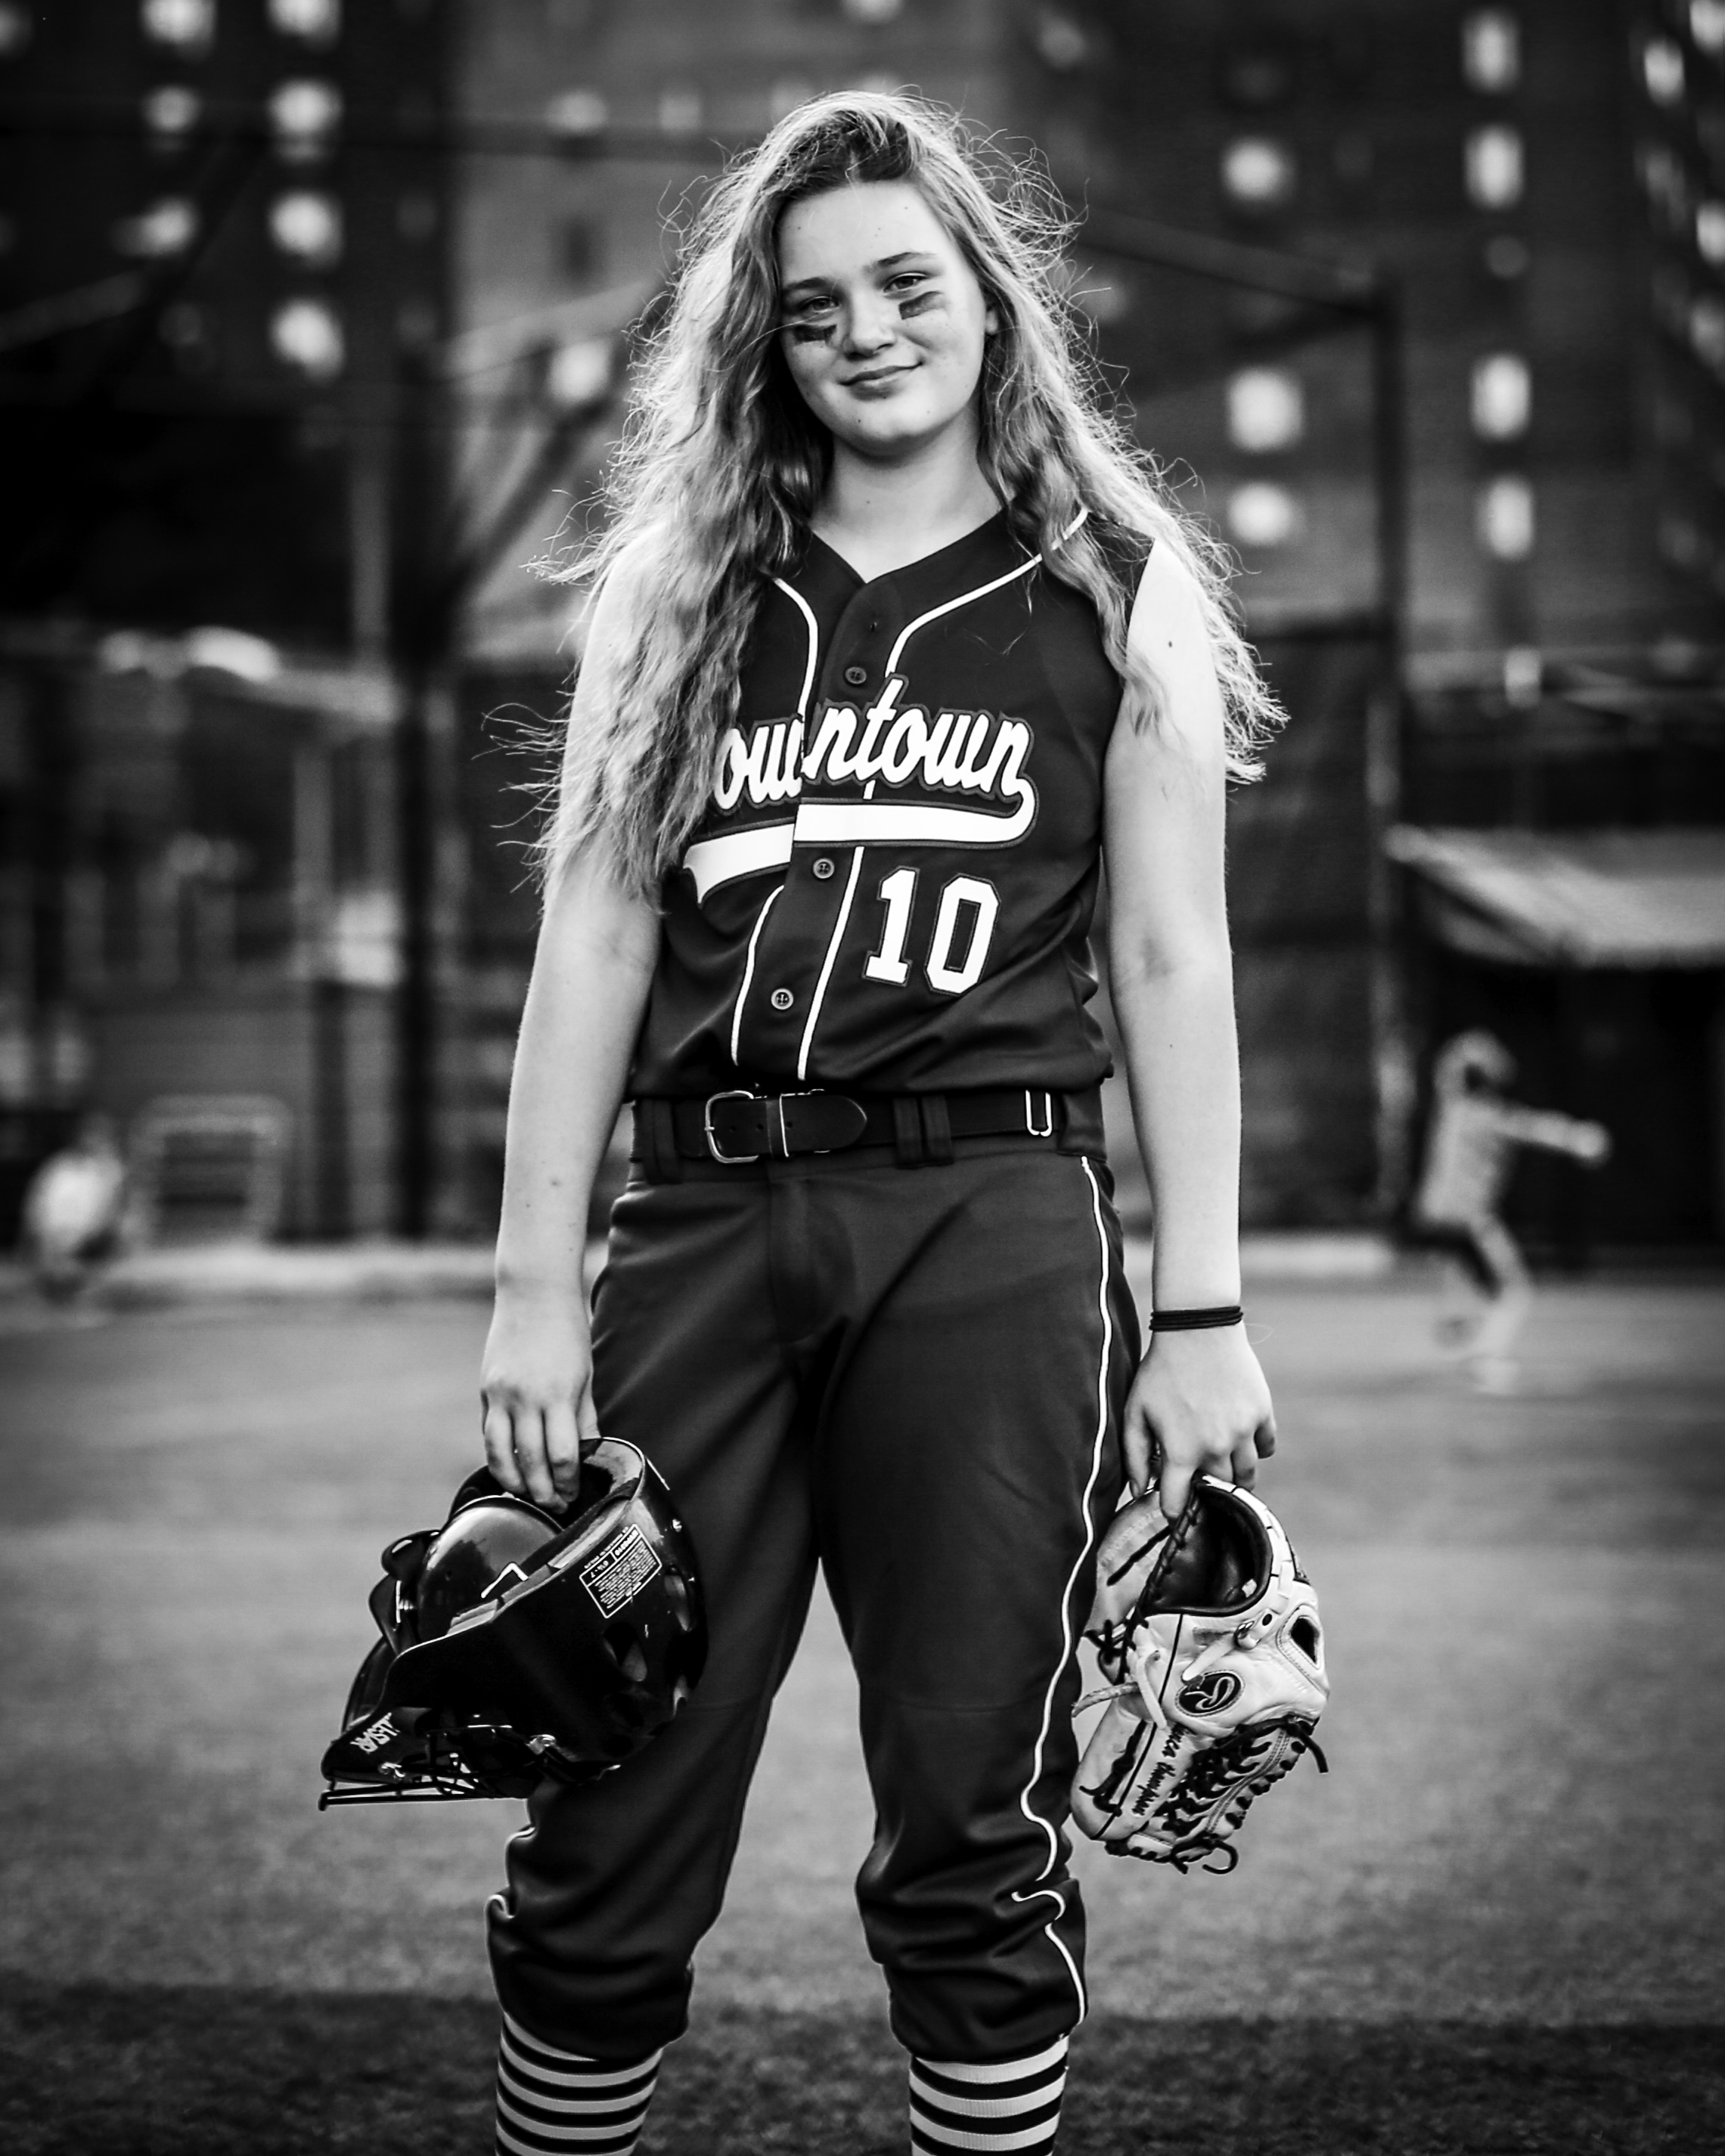 7W1A8723_softball_b&w_ritathompson.jpg